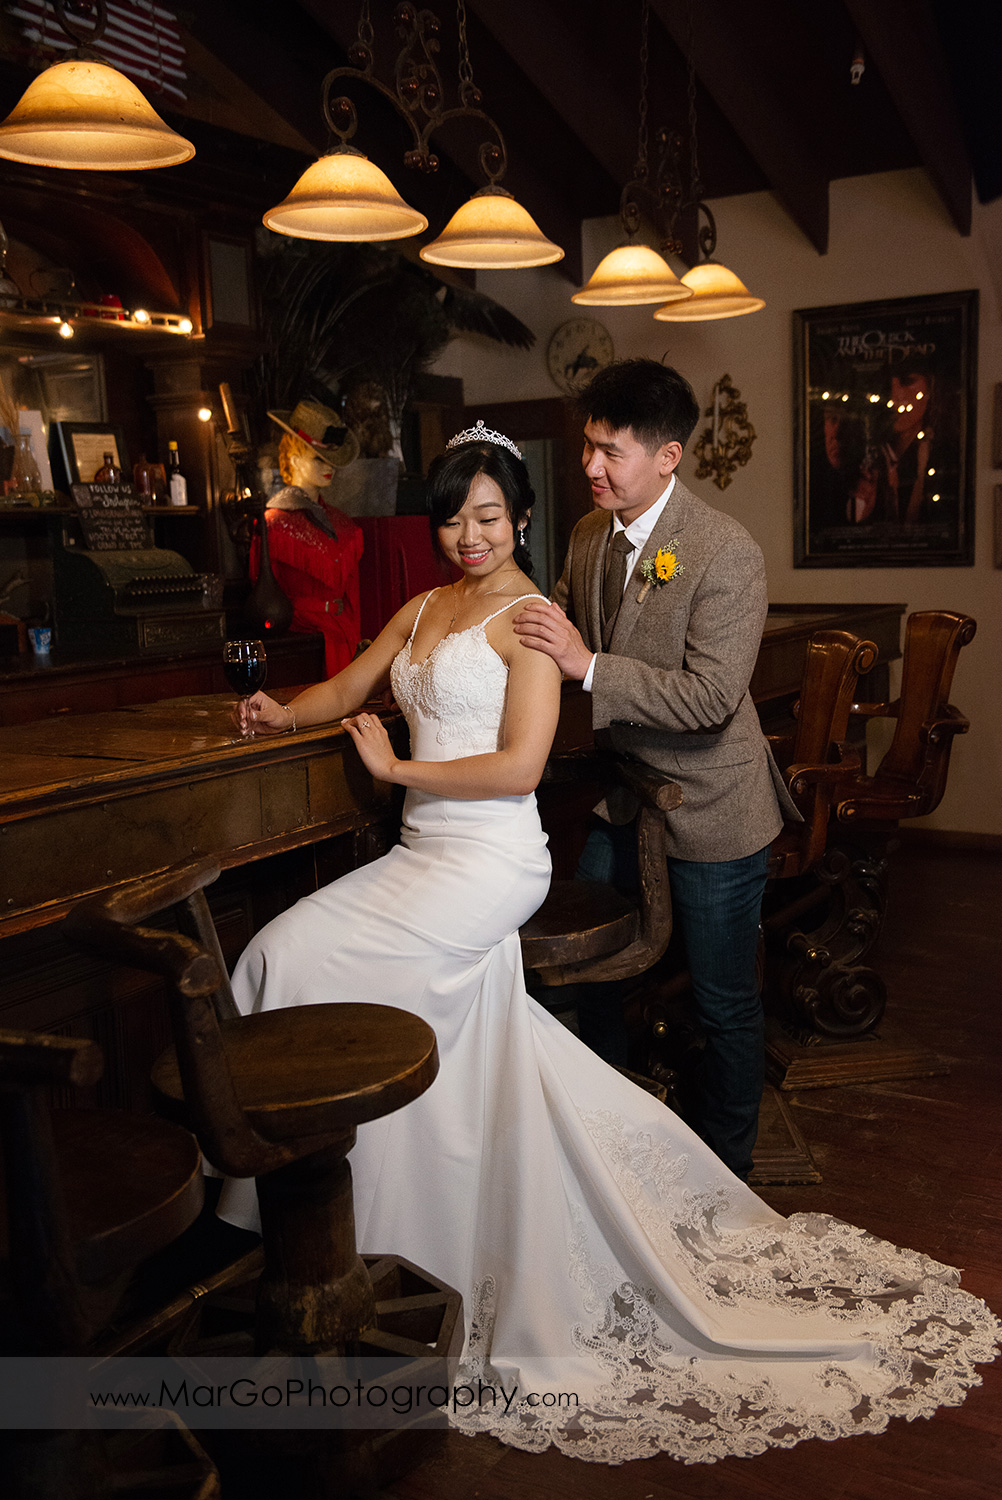 full body portrait of sitting bride and standing groom in the saloon at Long Branch Saloon & Farms in Half Moon Bay